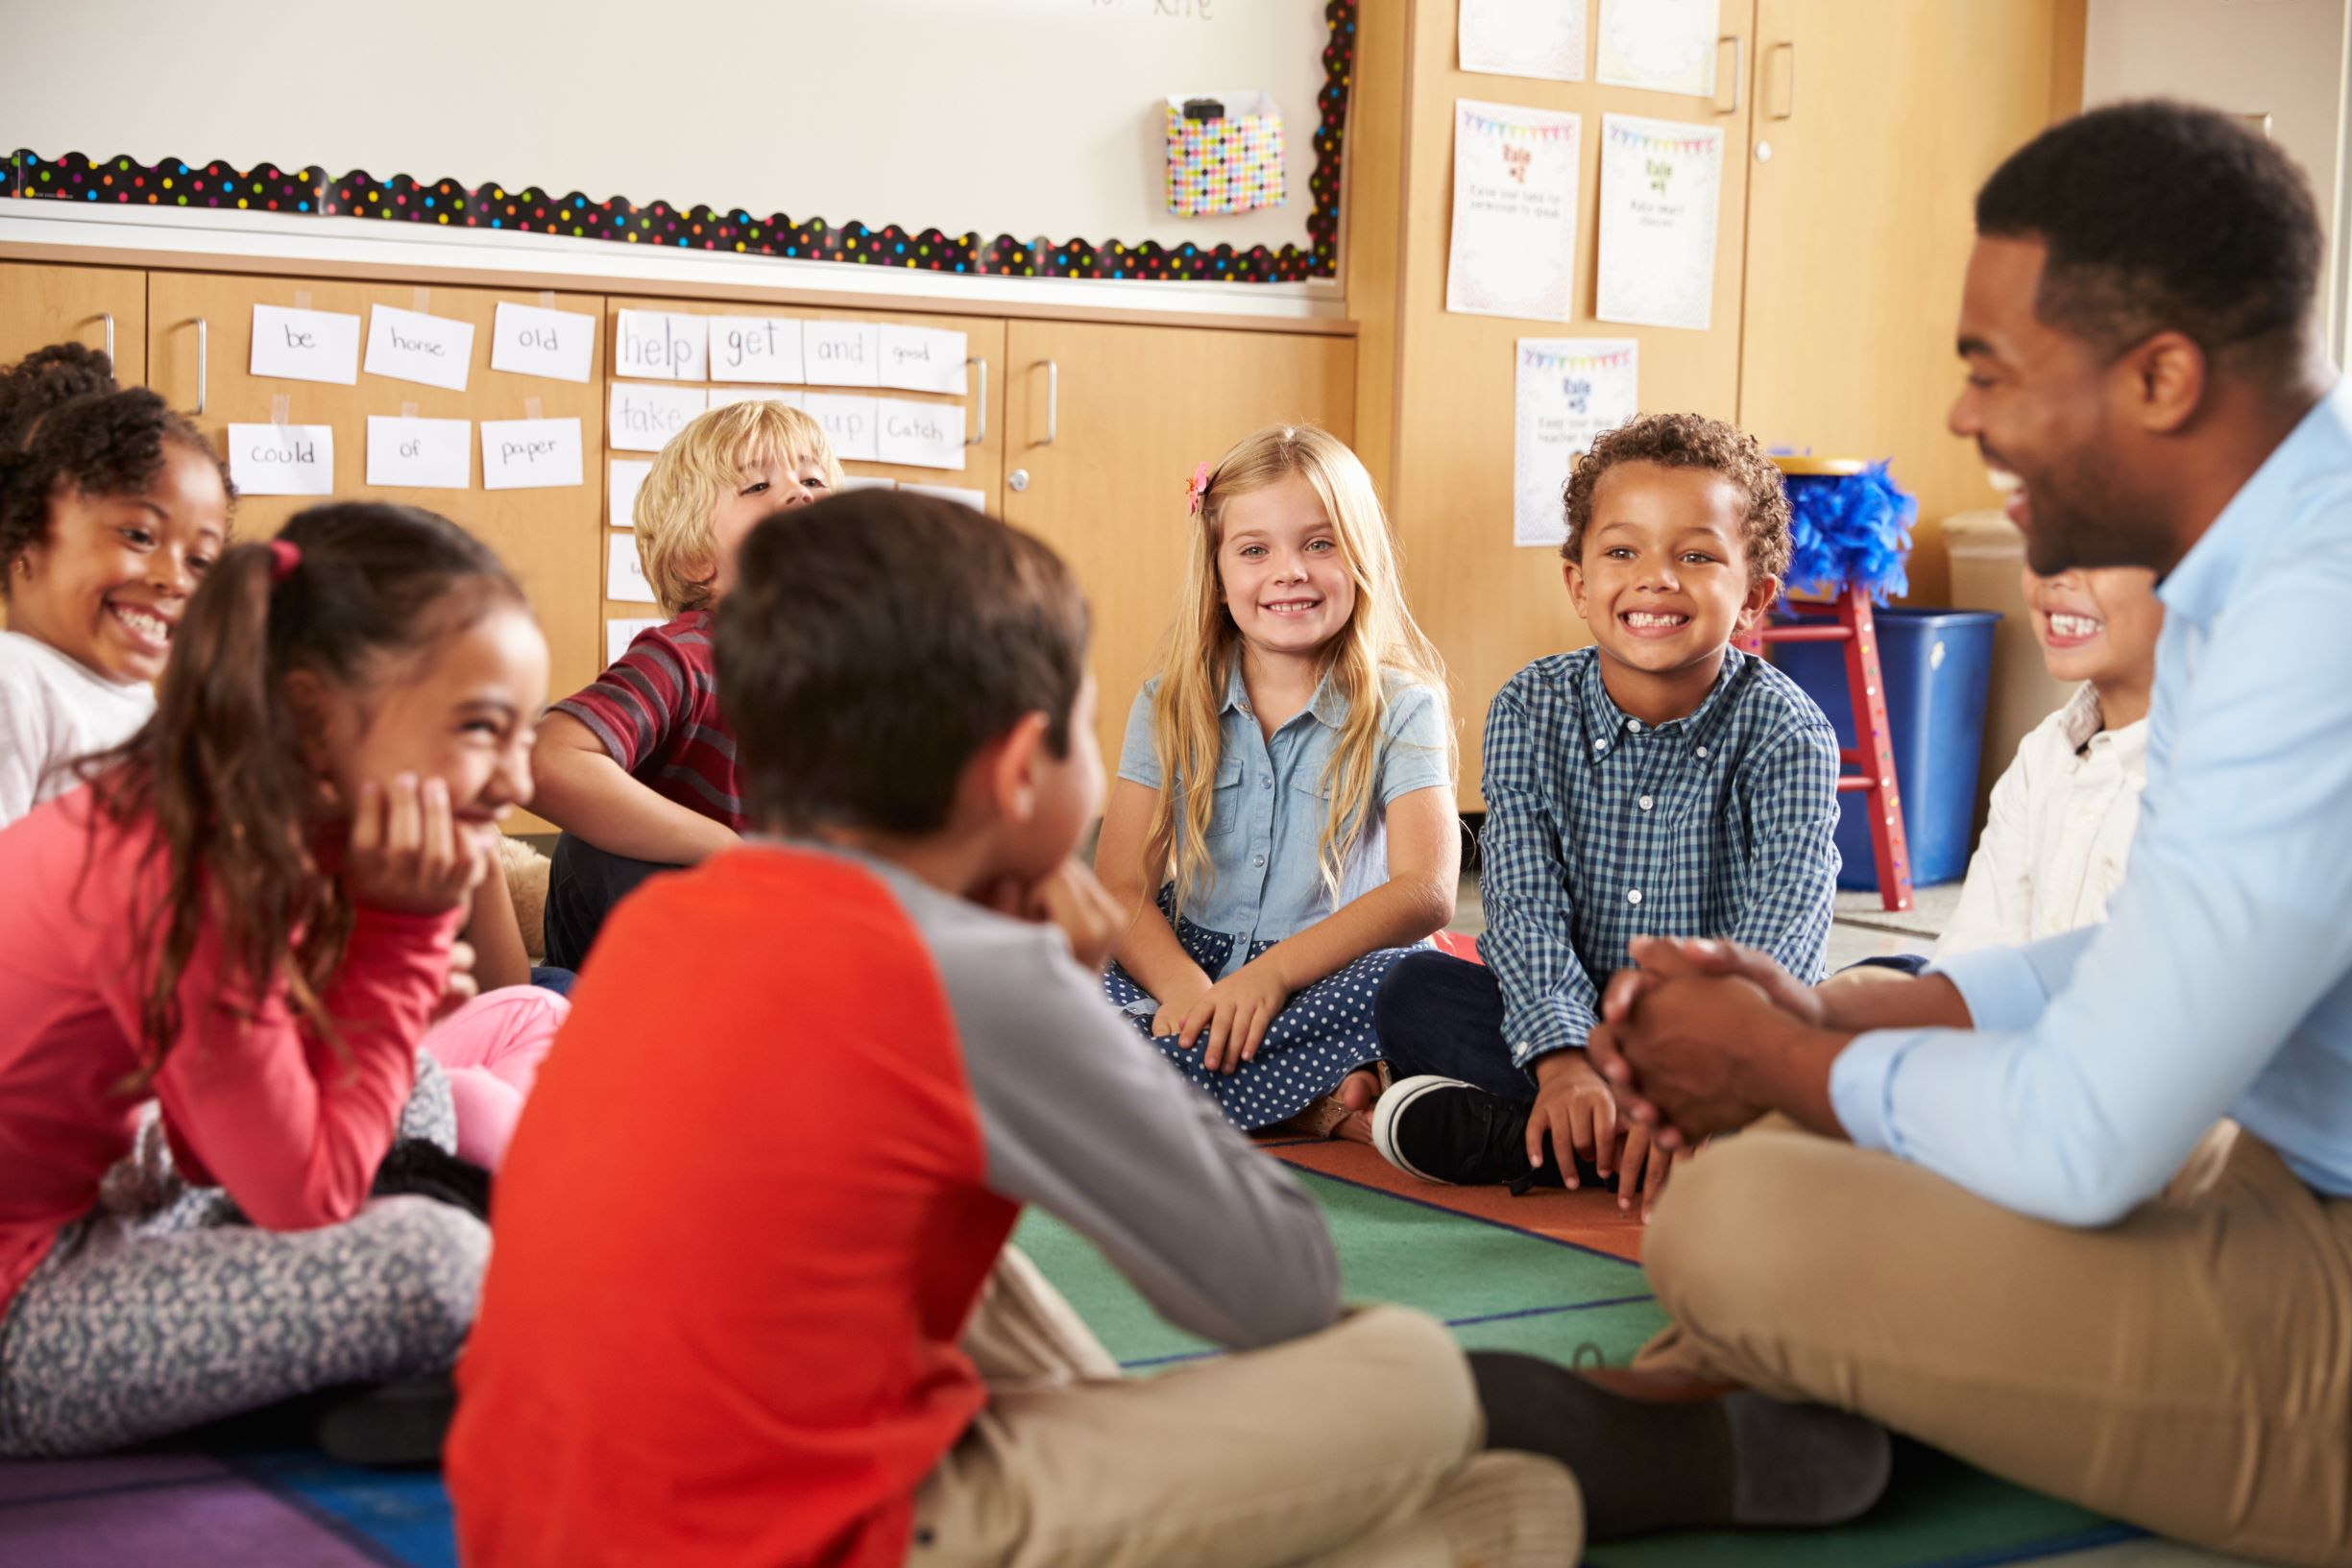 Children sit cross-legged learning together in a classroom.